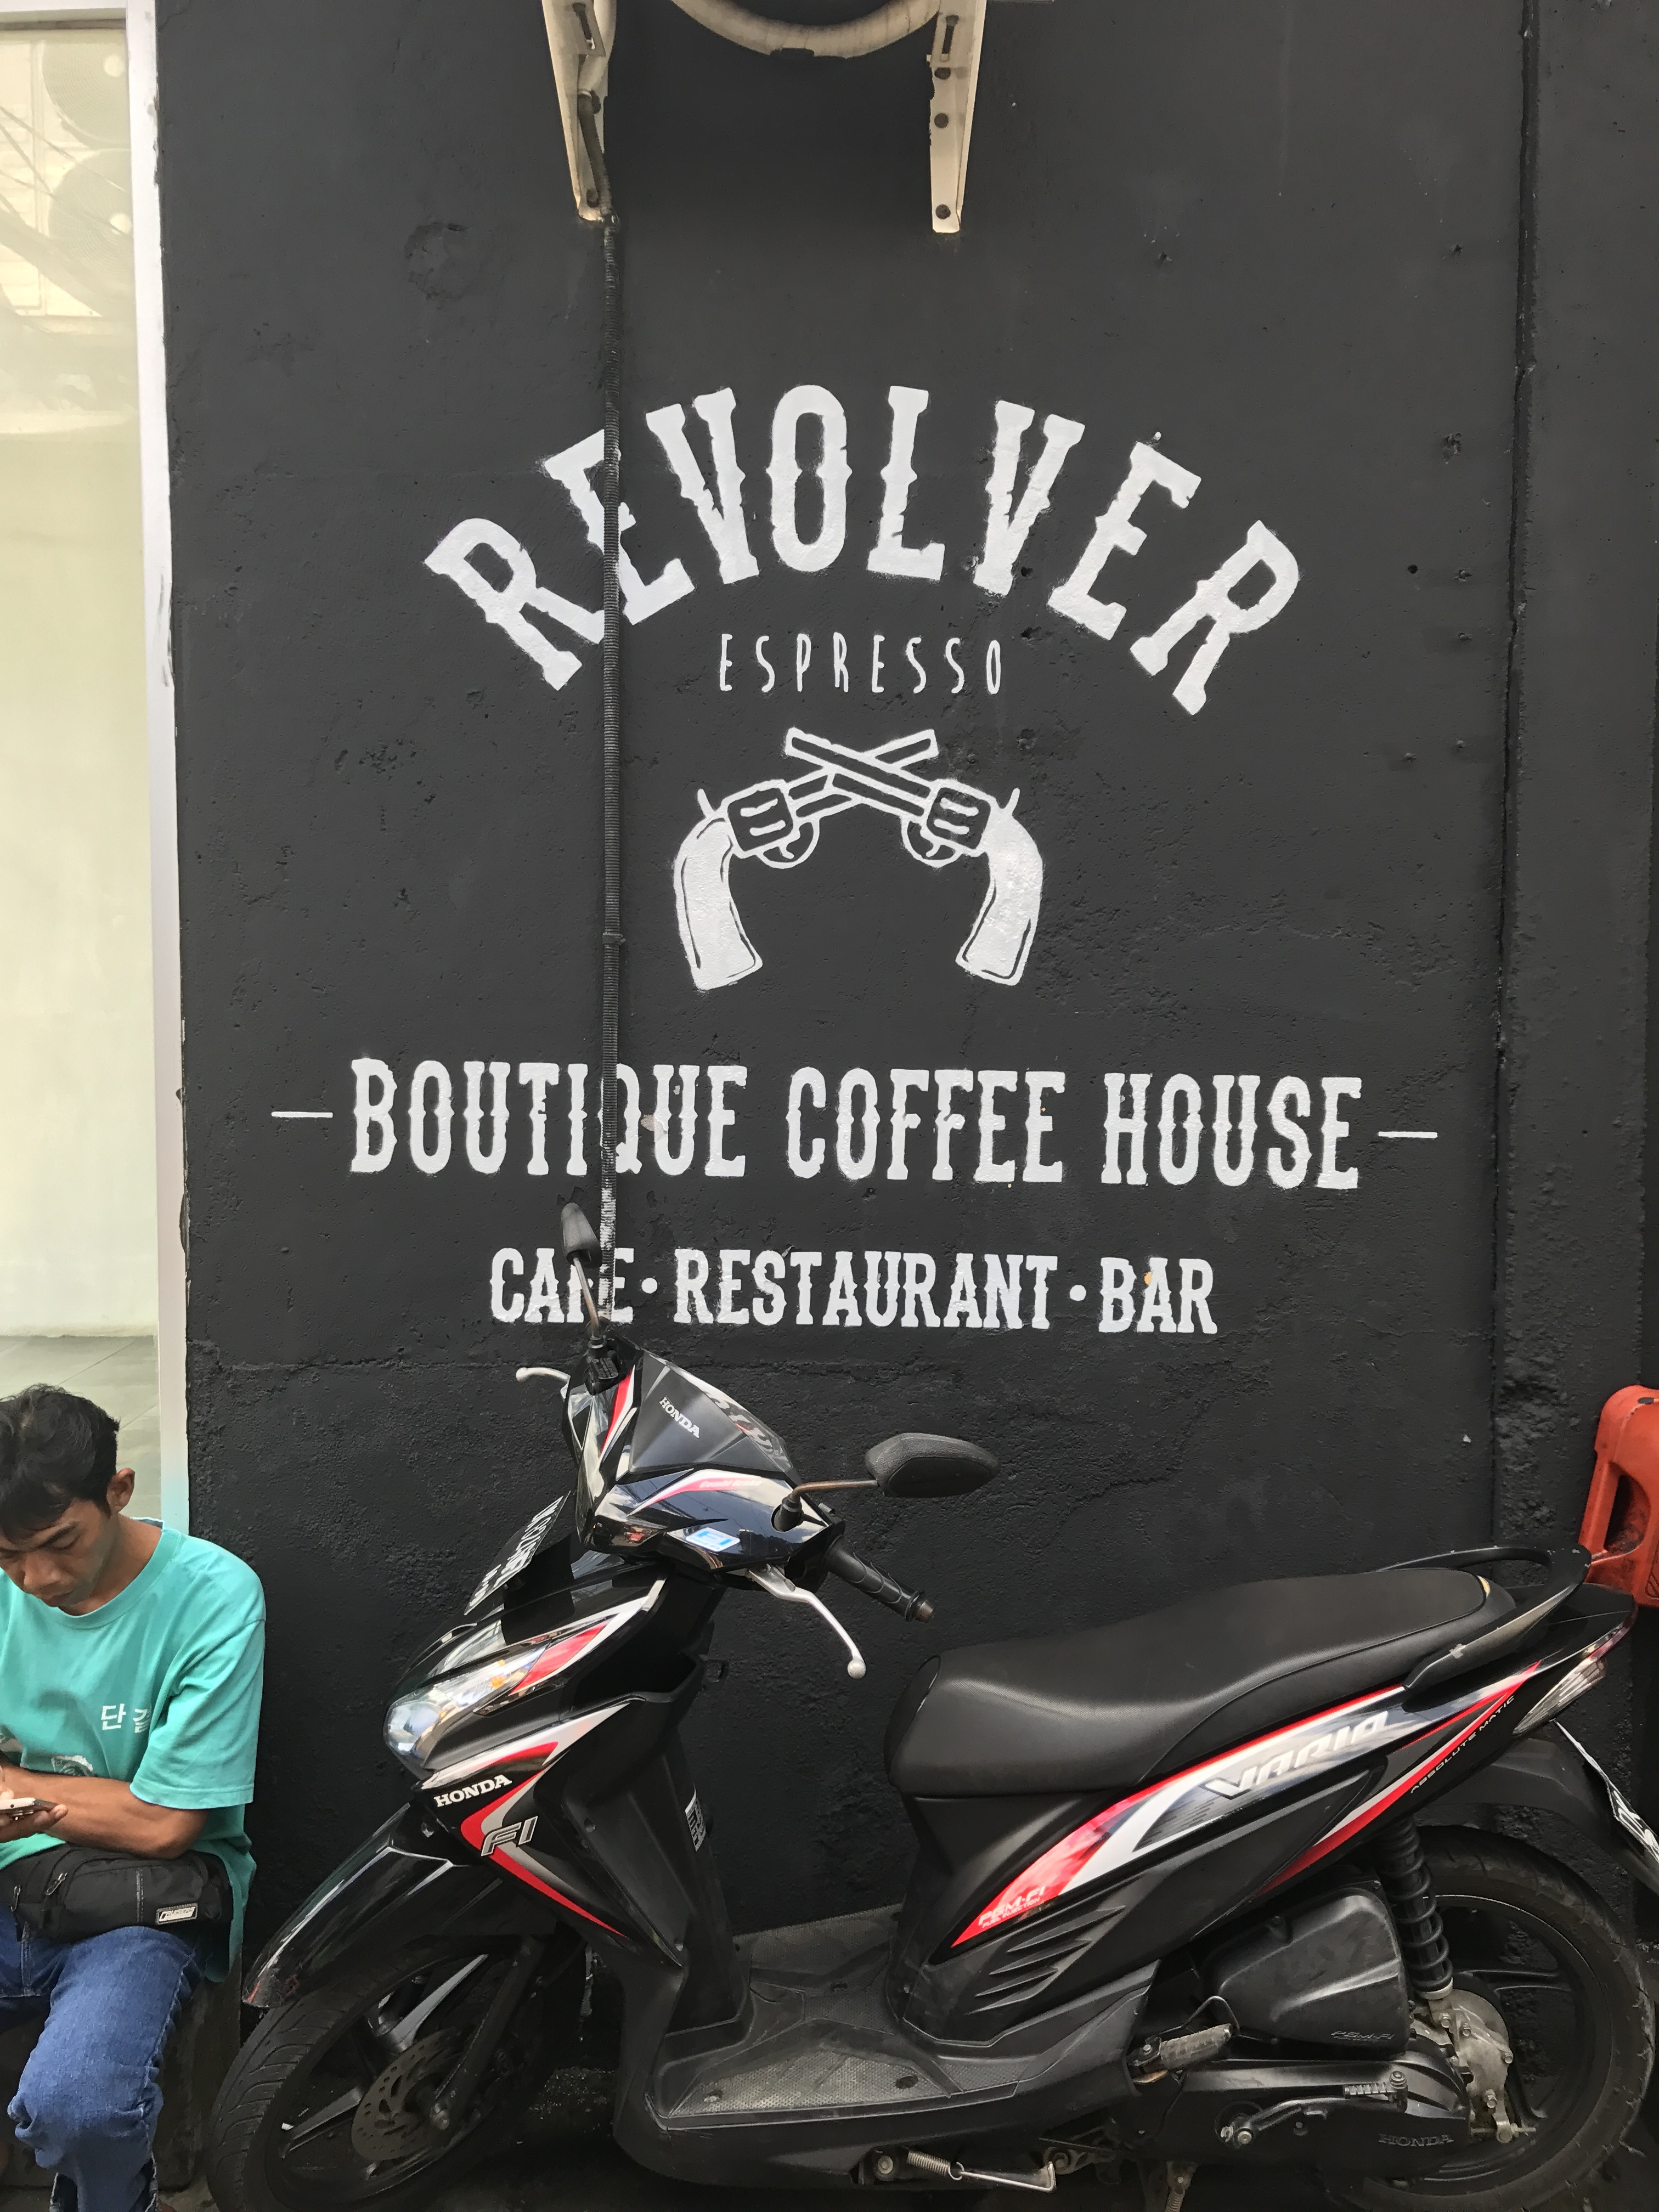 Revolver Espresso - Bali, Indonesia - Our Bali Trip - Communikait- Best Places To Eat In Bali - Best Food In Bali